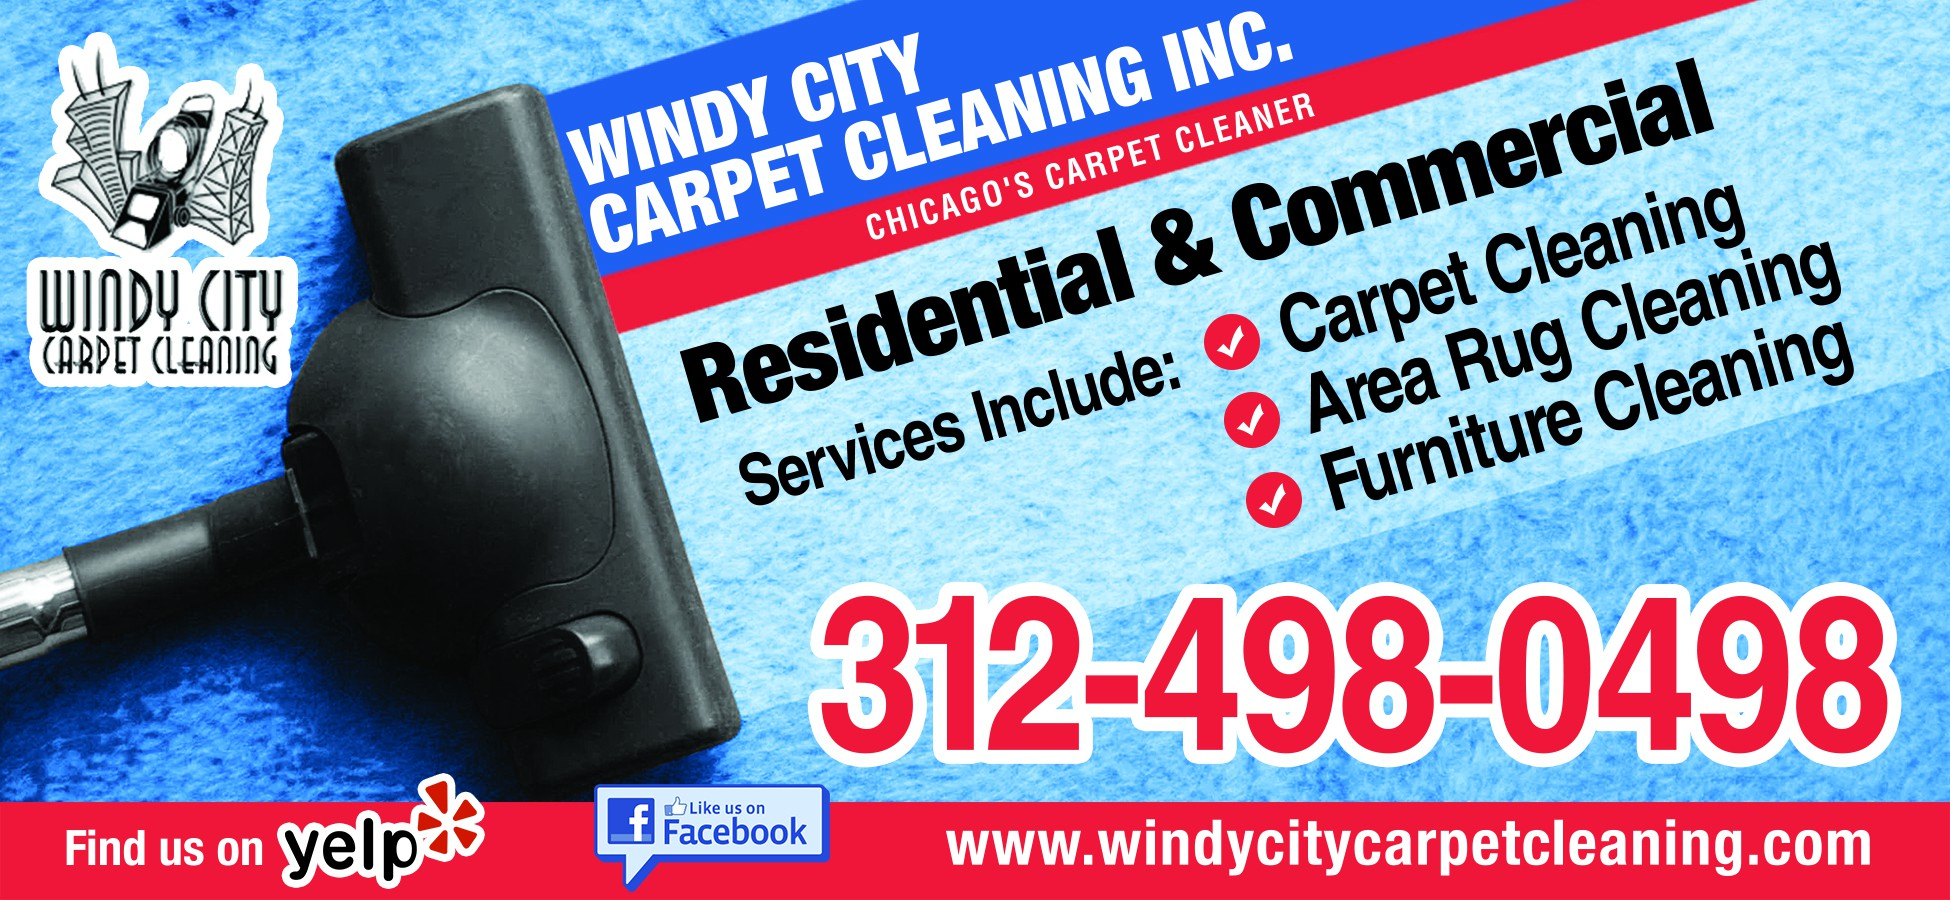 Windy City Carpet Cleaning print ad